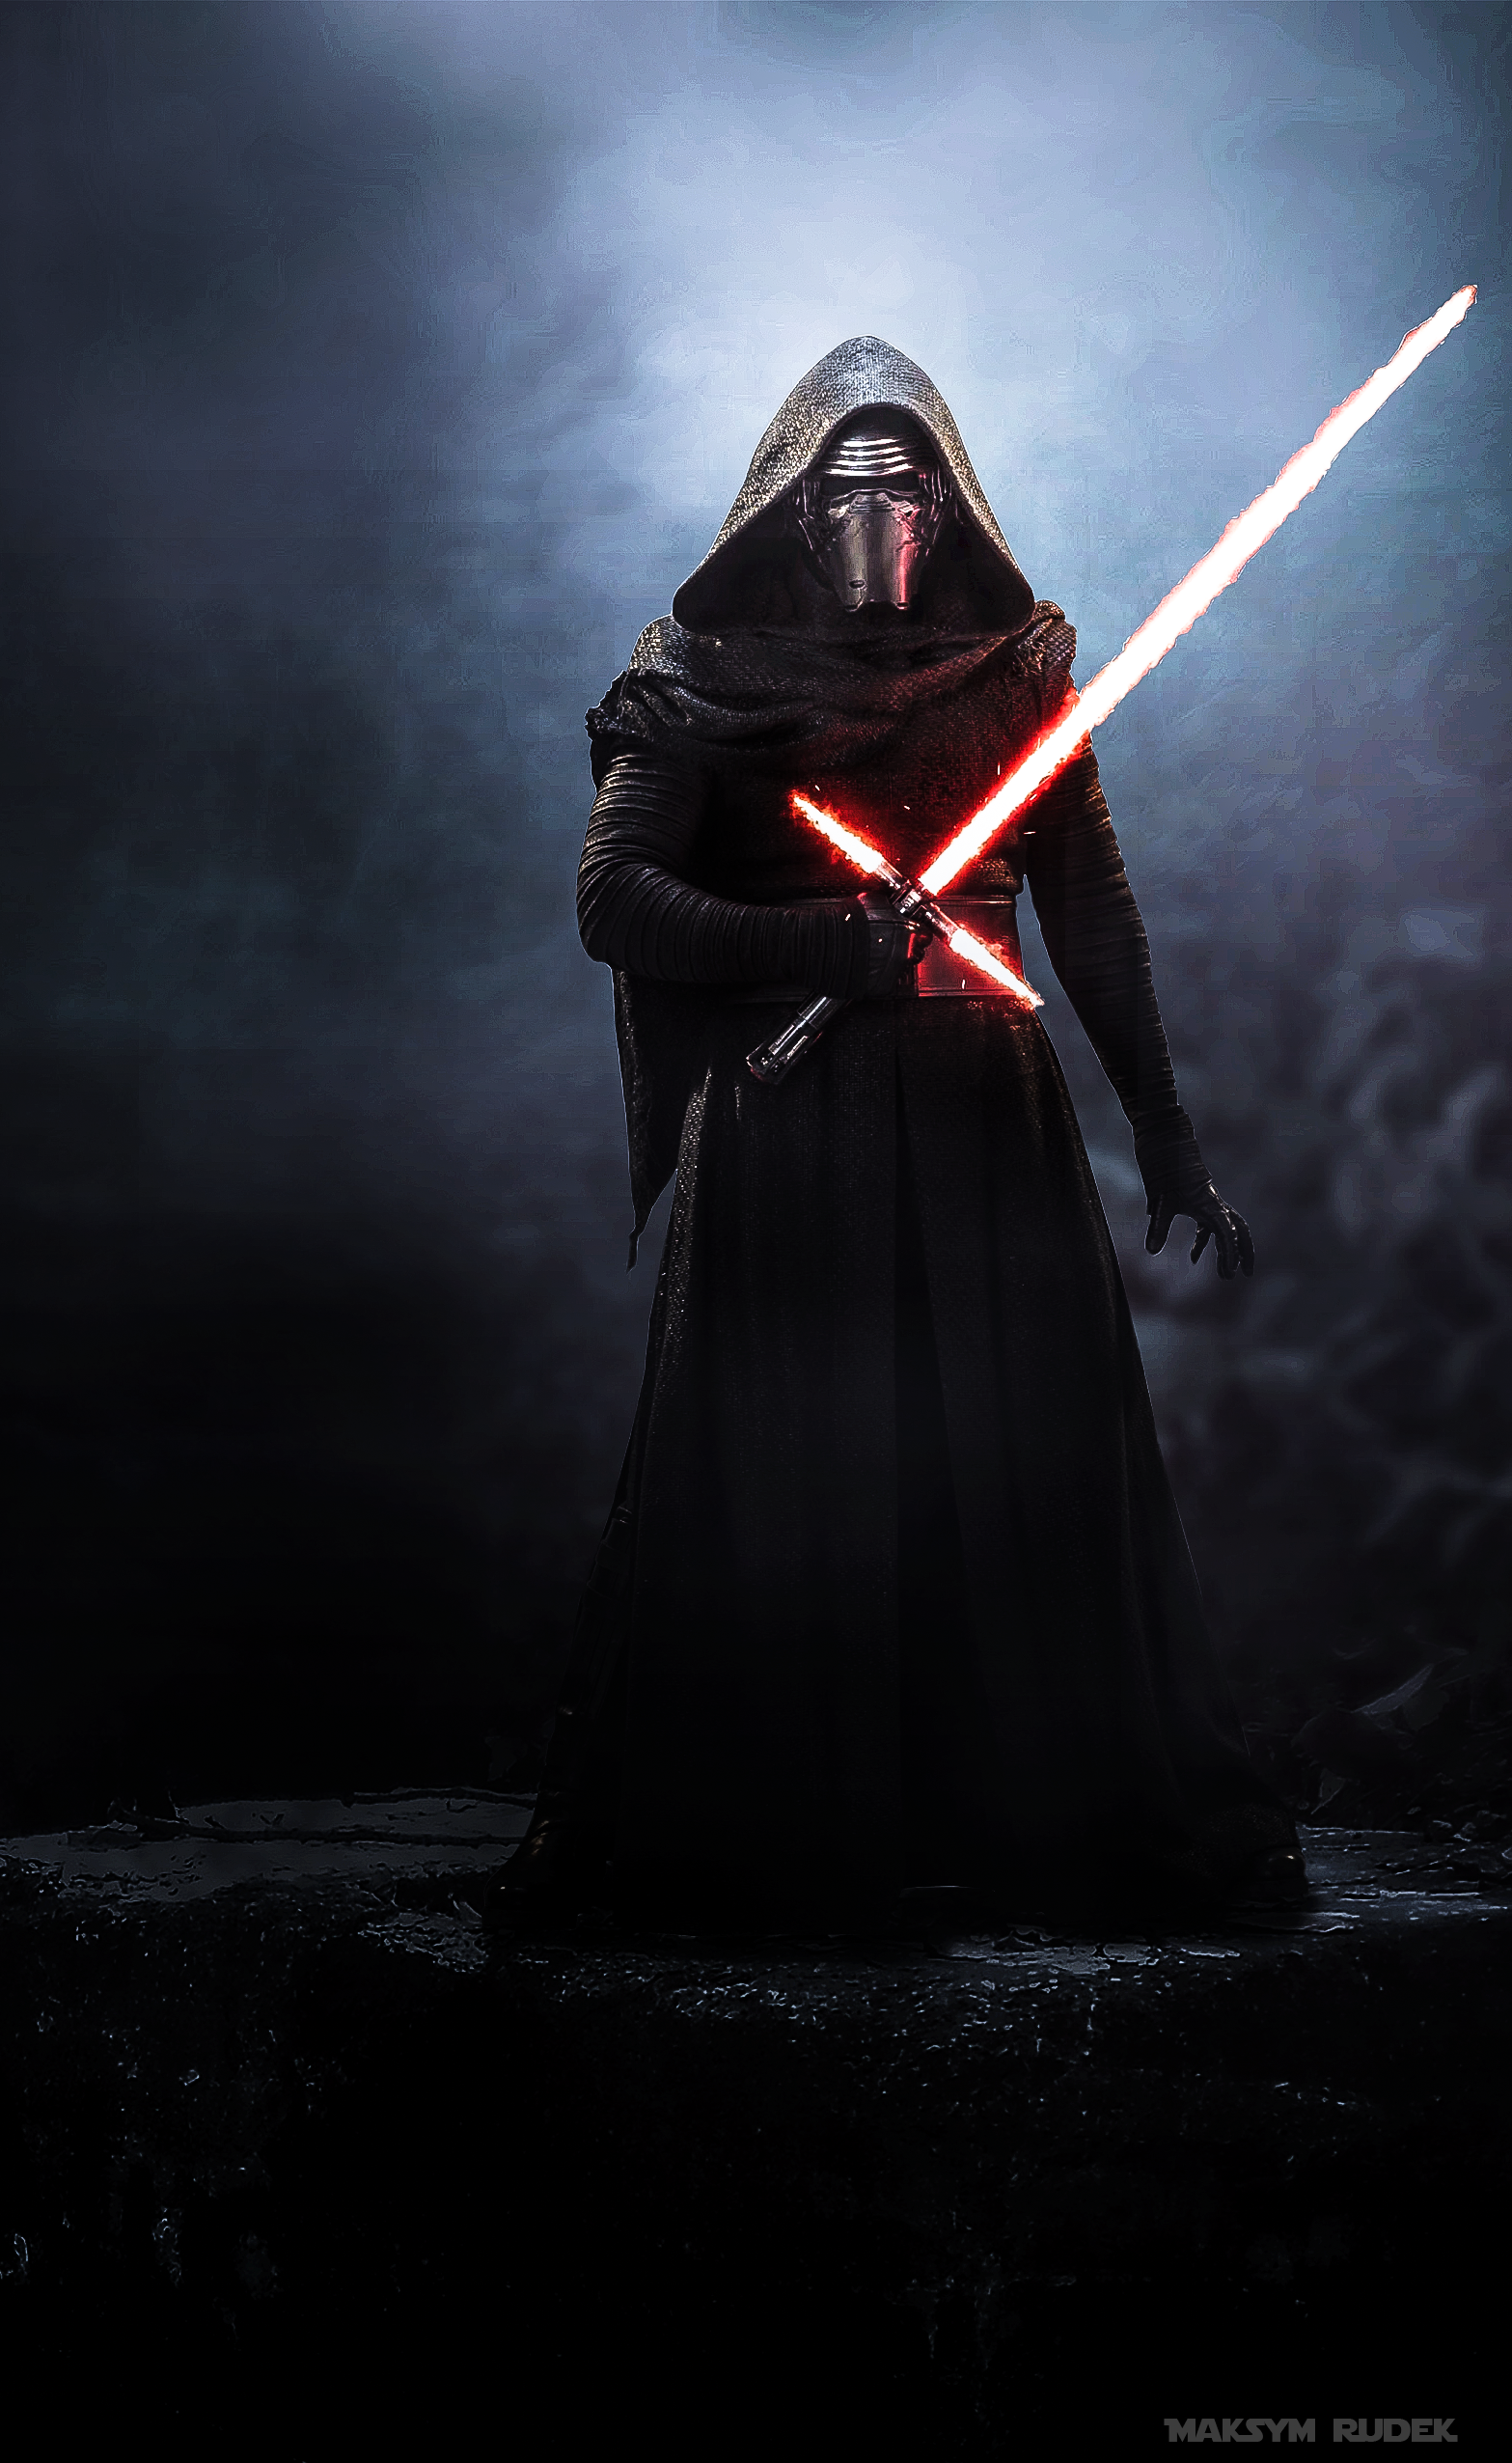 Kylo Ren Smartphone Wallpaper (With images) Tapety